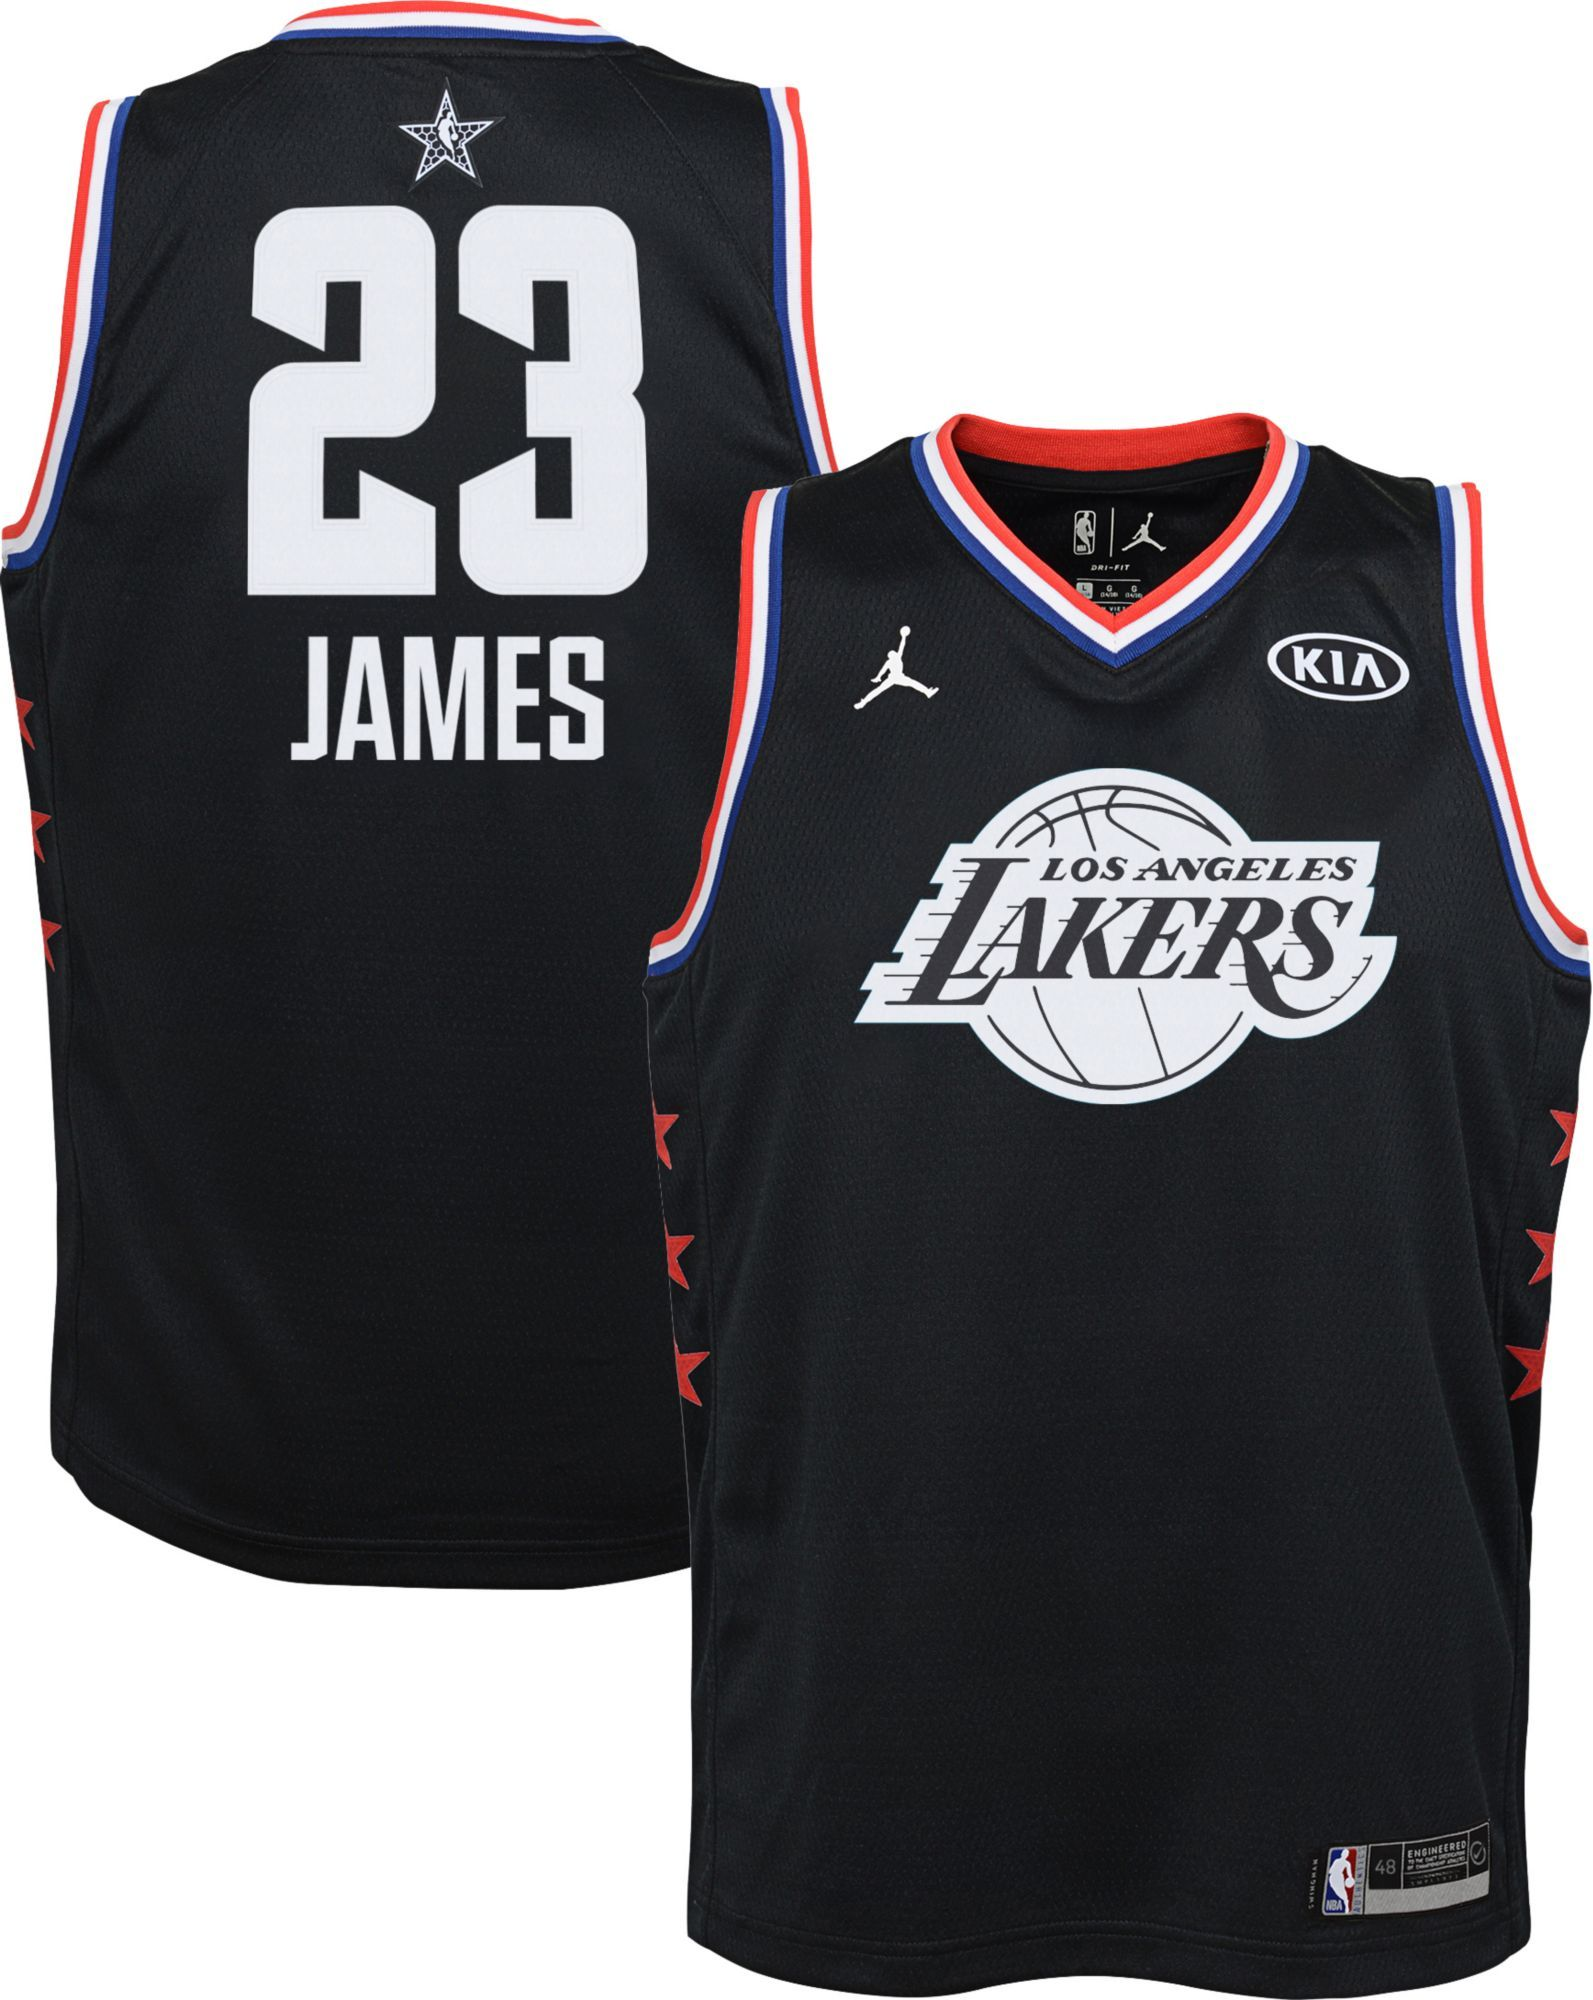 f2a1951db8e Jordan Youth 2019 NBA All-Star Game LeBron James Black Dri-FIT Swingman  Jersey, Boy's, Size: Medium